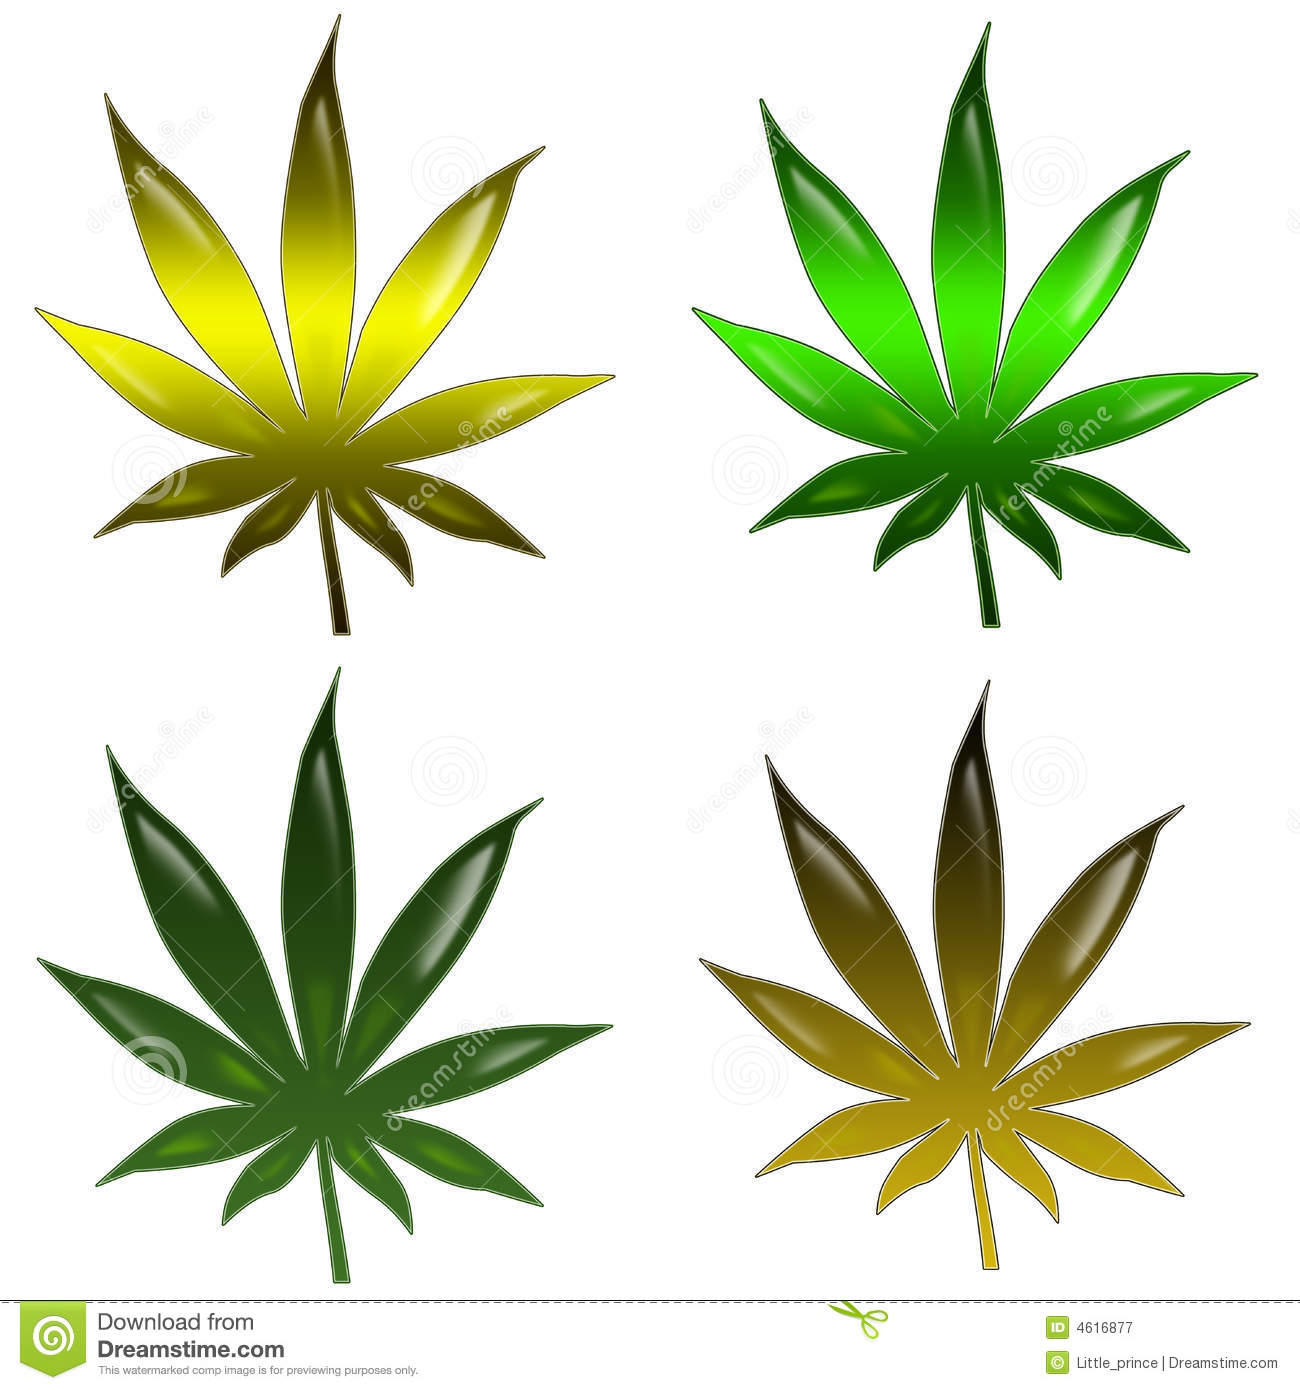 Marijuana Leaf Royalty Free Stock Photography - Image: 4616877